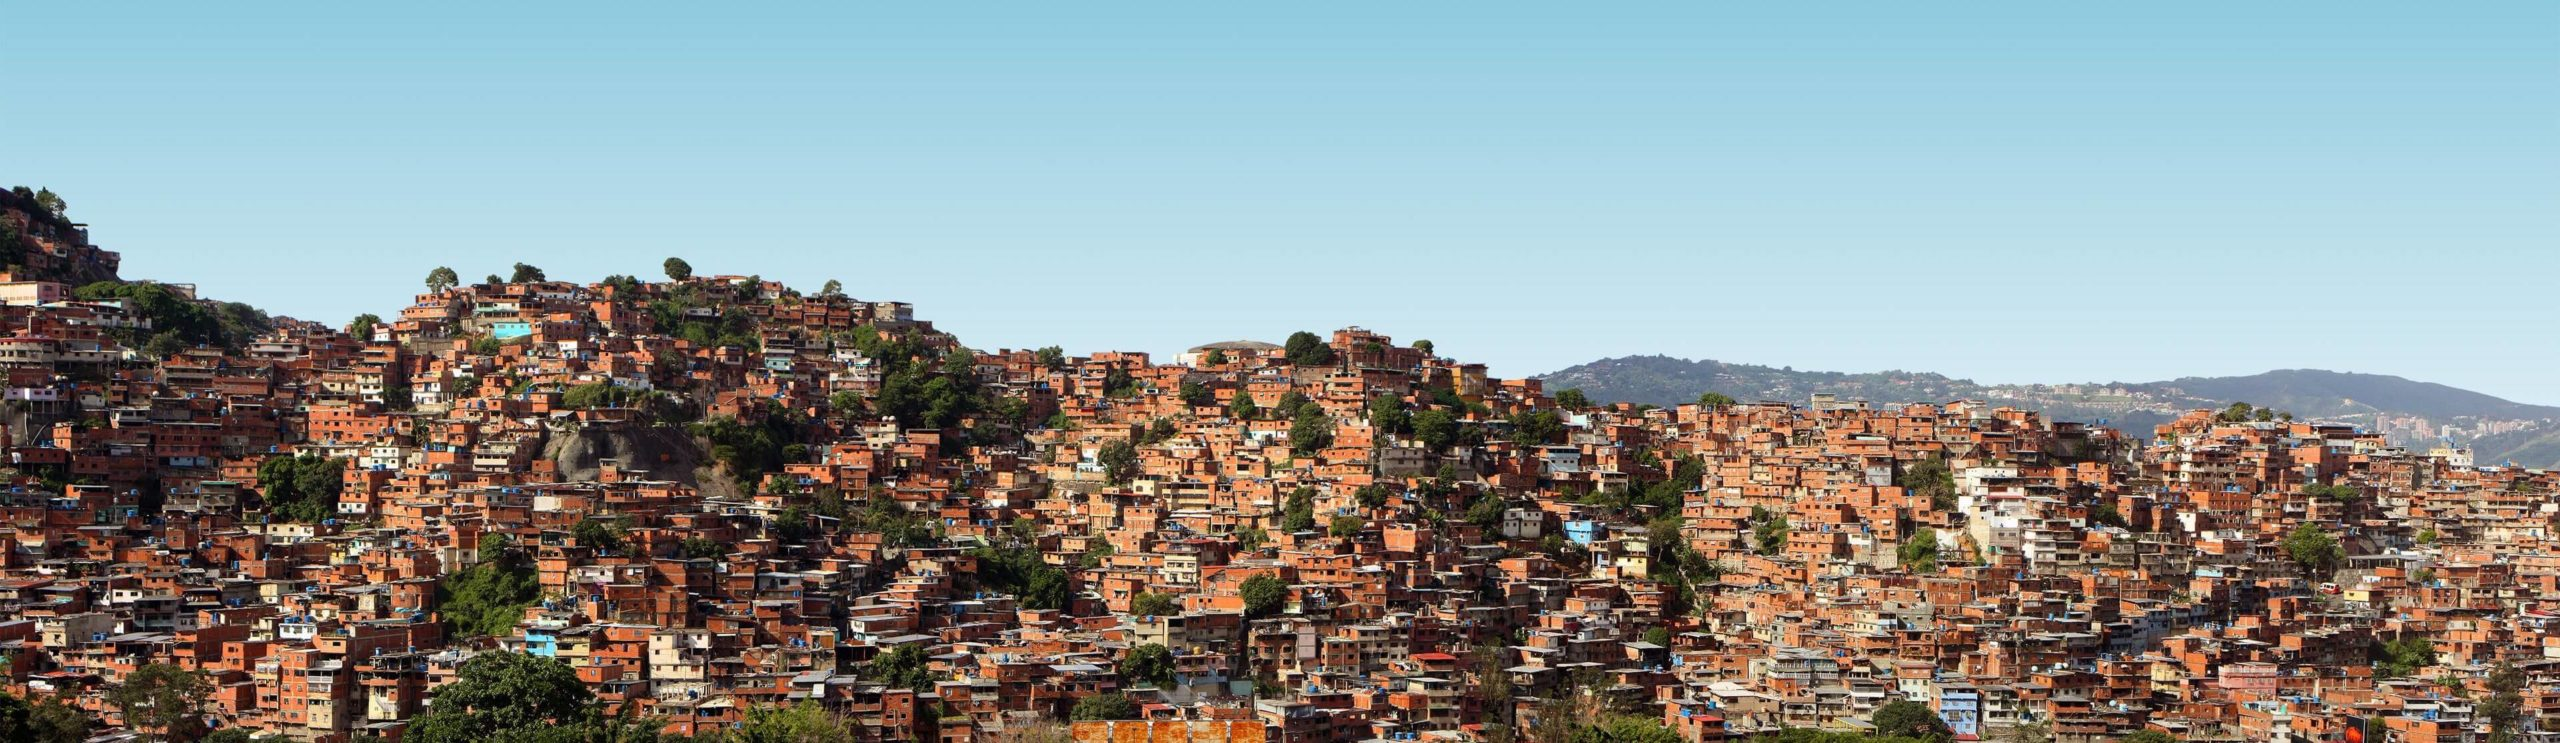 Hills covered in houses in Caracas, Venezuala. One of the most dangerous cities in the world.